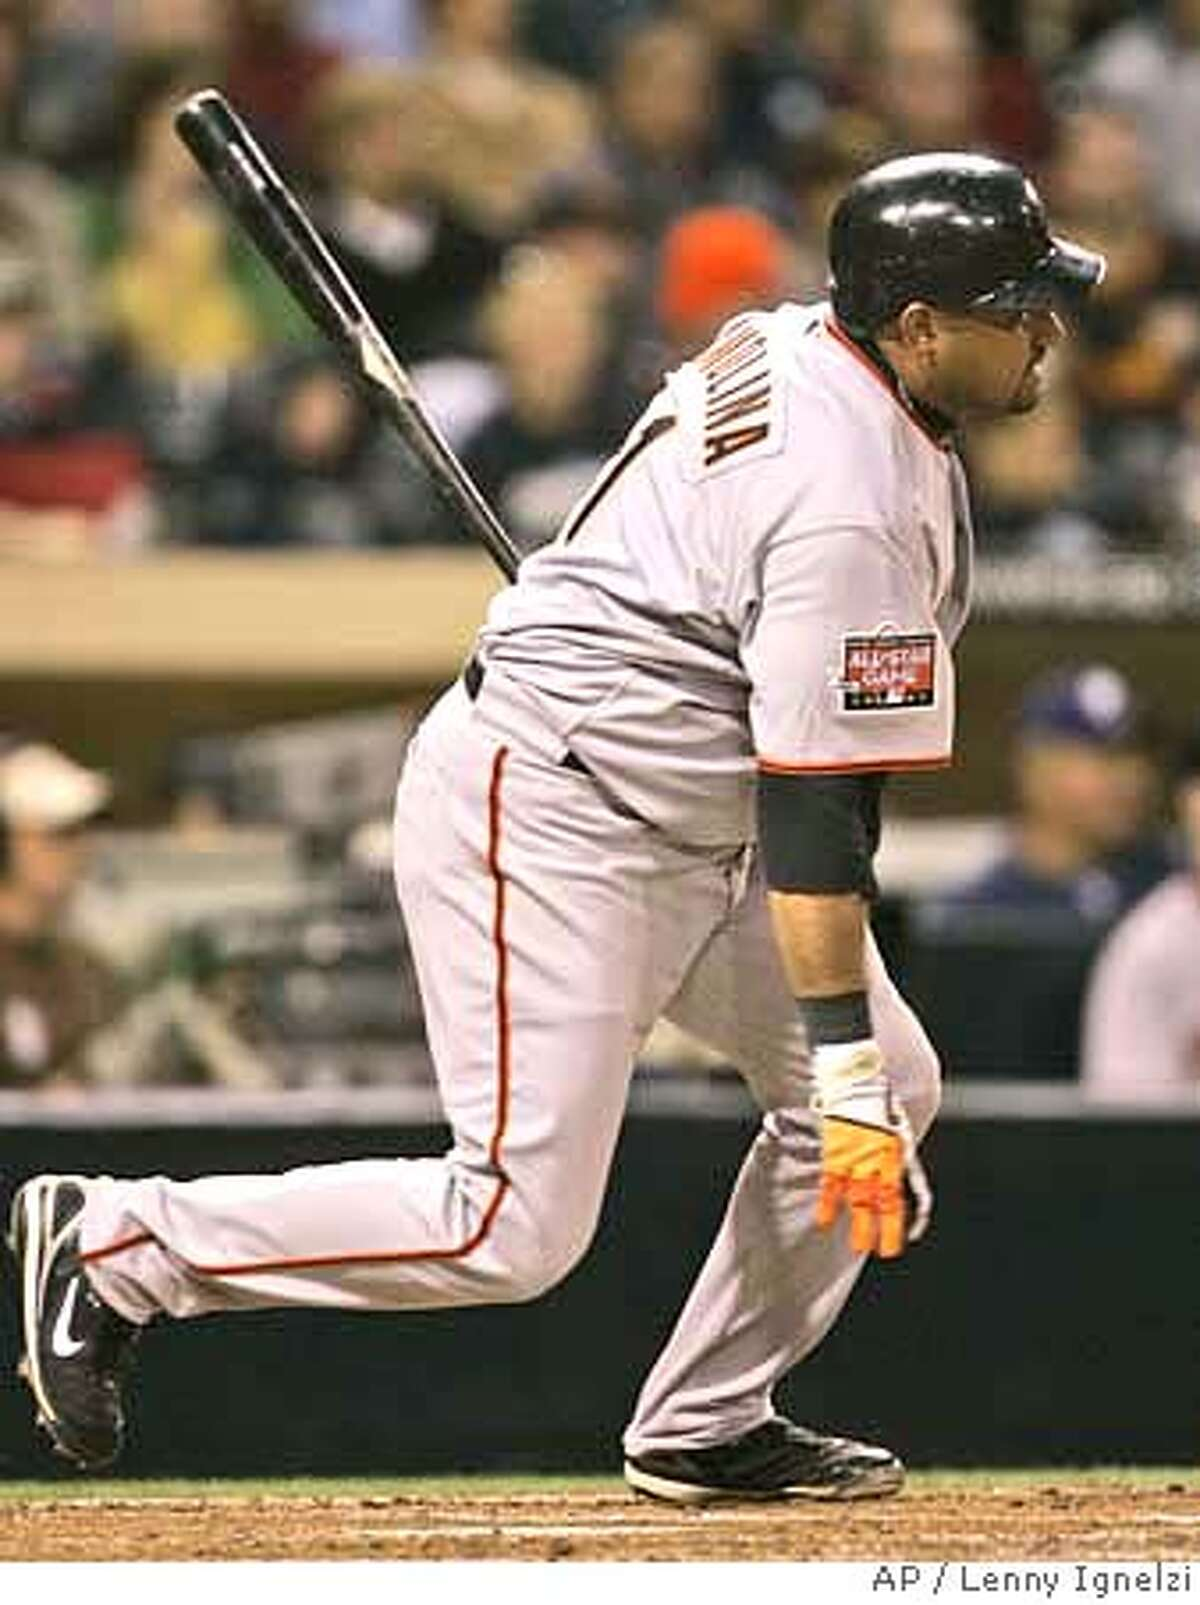 San Francisco Giants' Bengie Molina watches his RBI single go into left field in the second inning against the San Diego Padres during their baseball game in San Diego, Tuesday, April 10, 2007. Molina drove in two runs by the fourth inning. (AP Photo/Lenny Ignelzi)